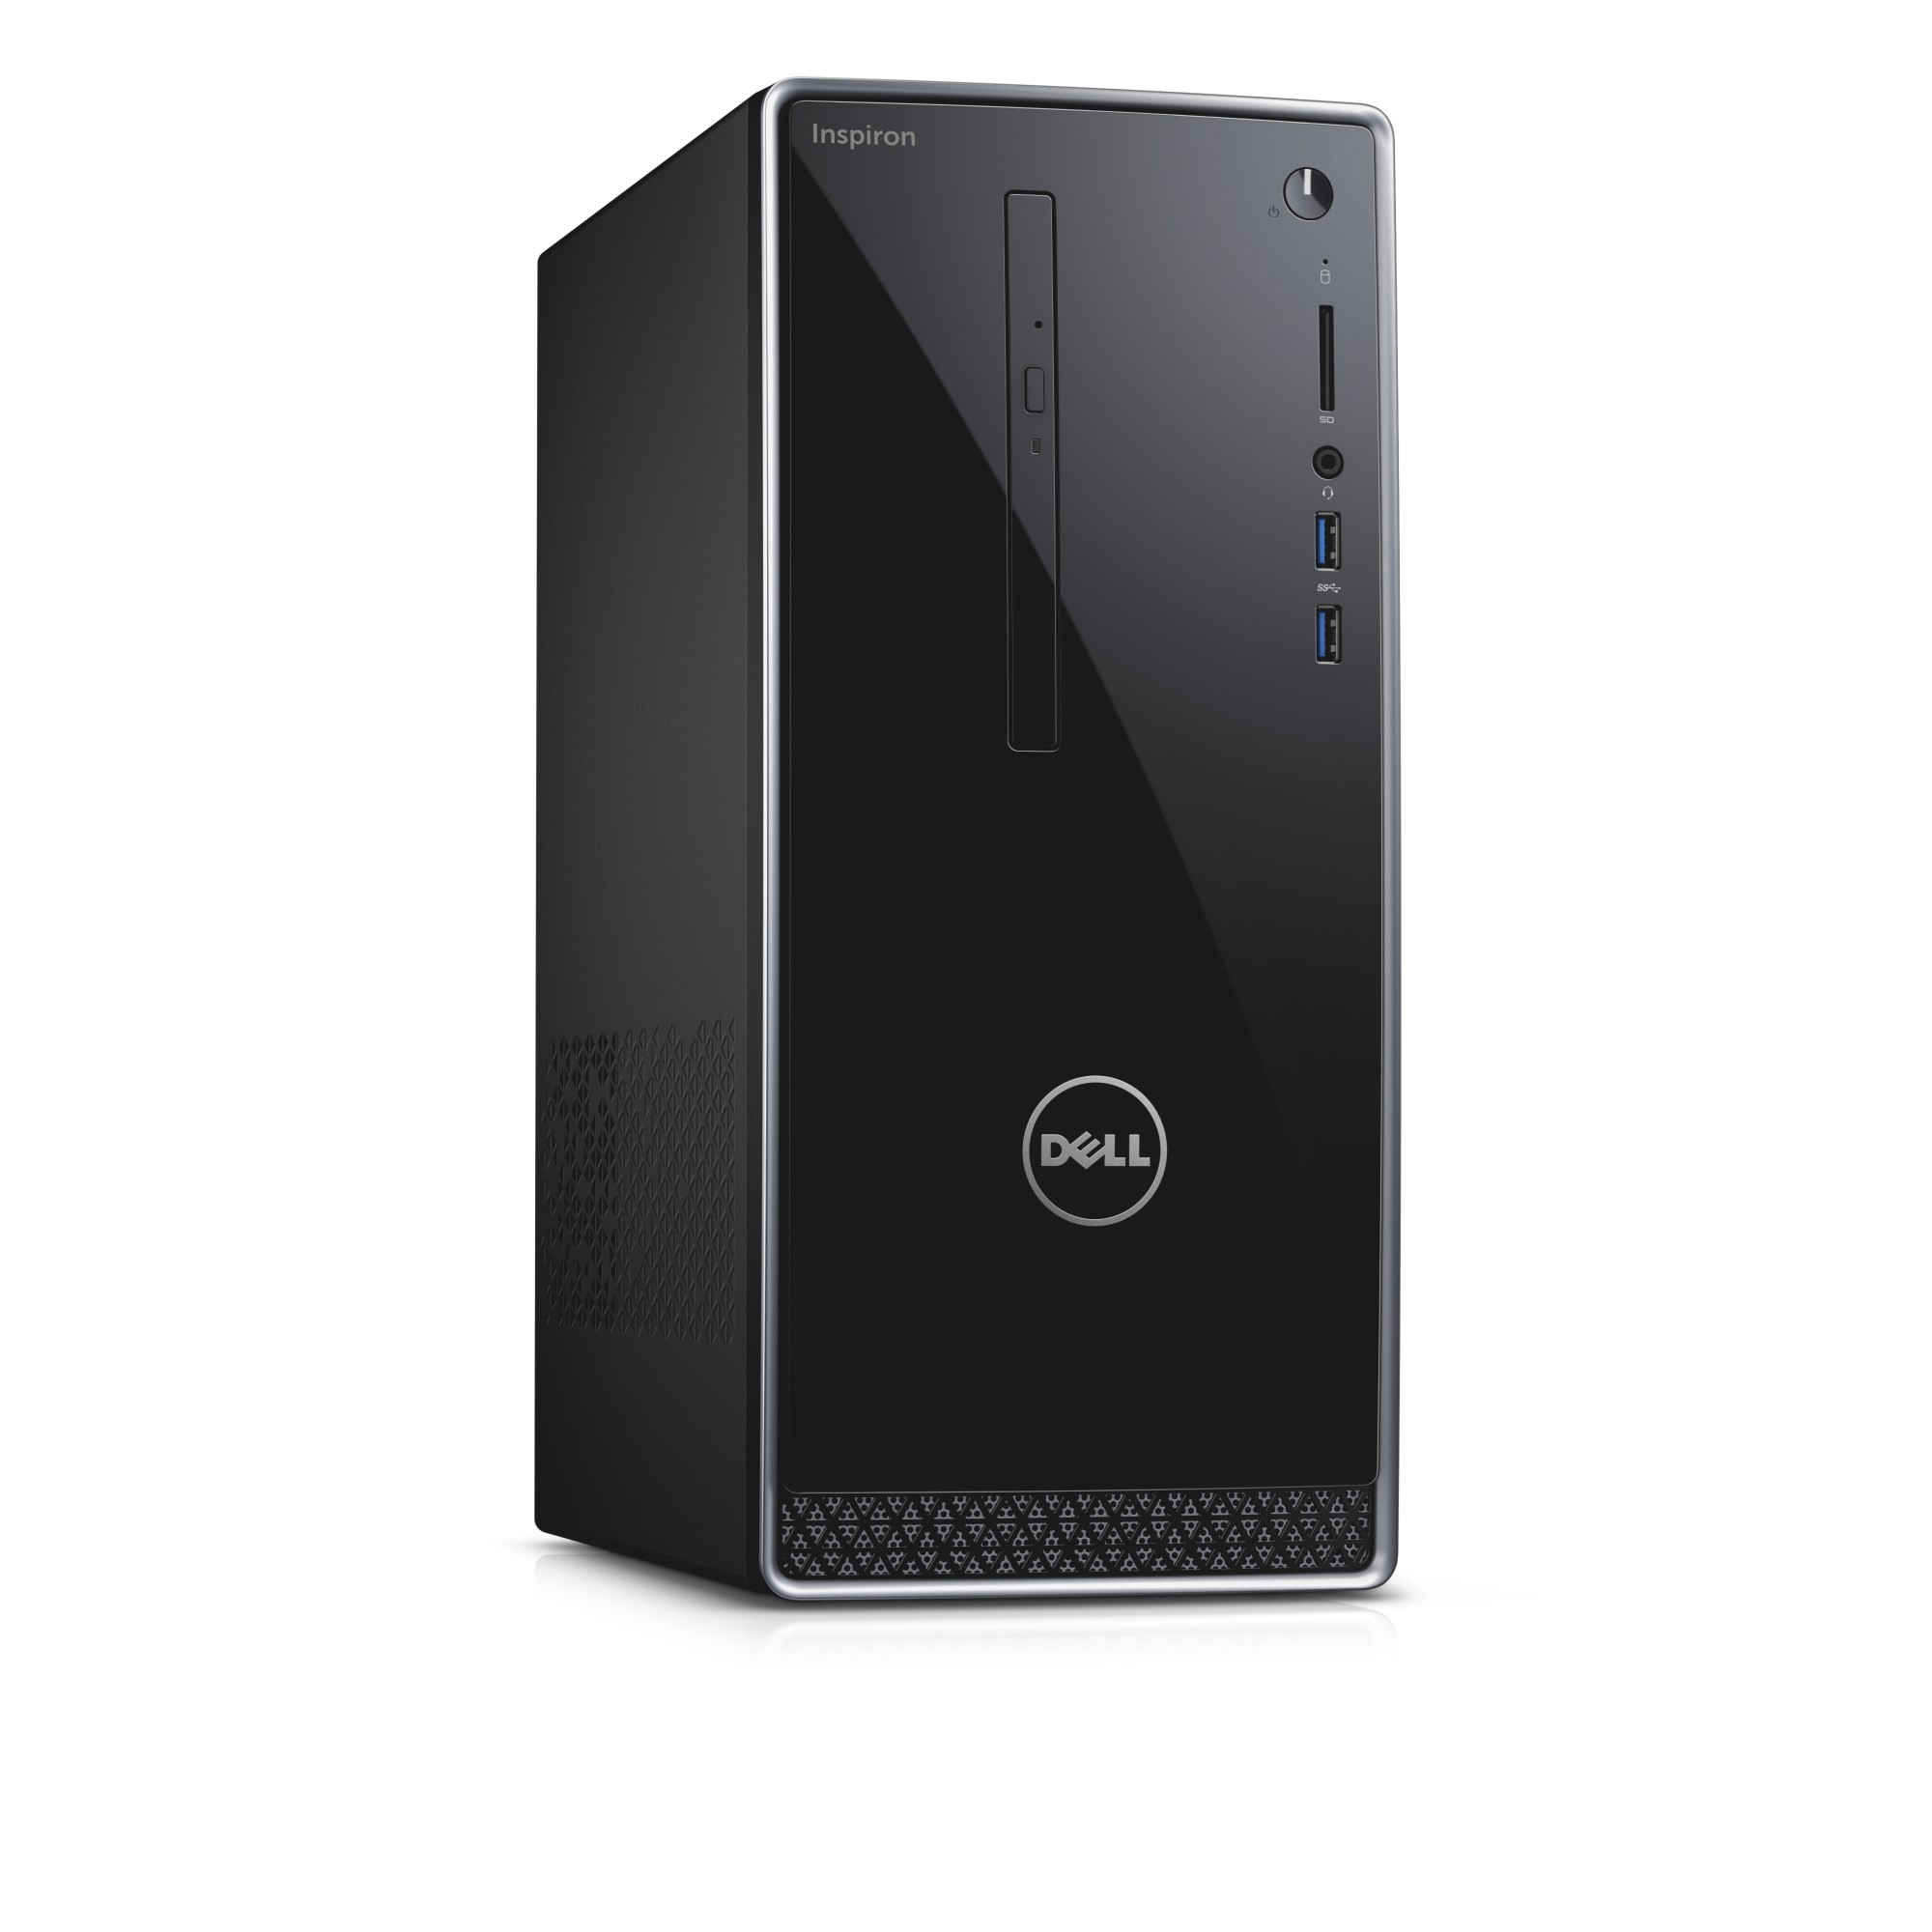 DELL 3668-1677 INSPIRON 3668 3GHZ I5-7400 DESKTOP BLACK PC